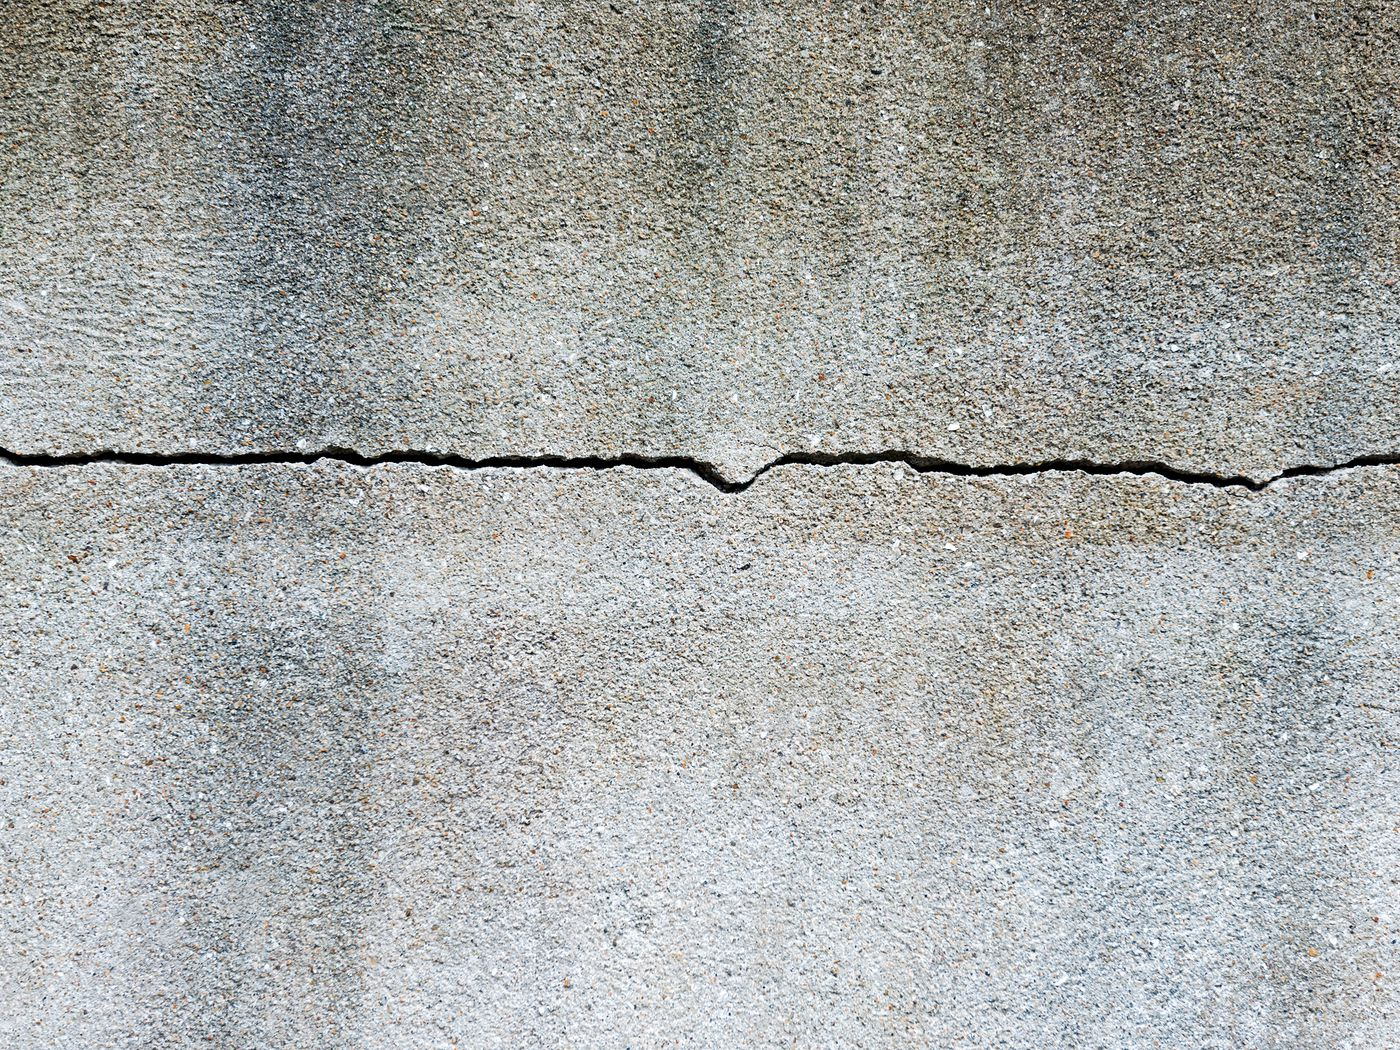 Image of: How To Repair A Concrete Wall In 8 Steps This Old House